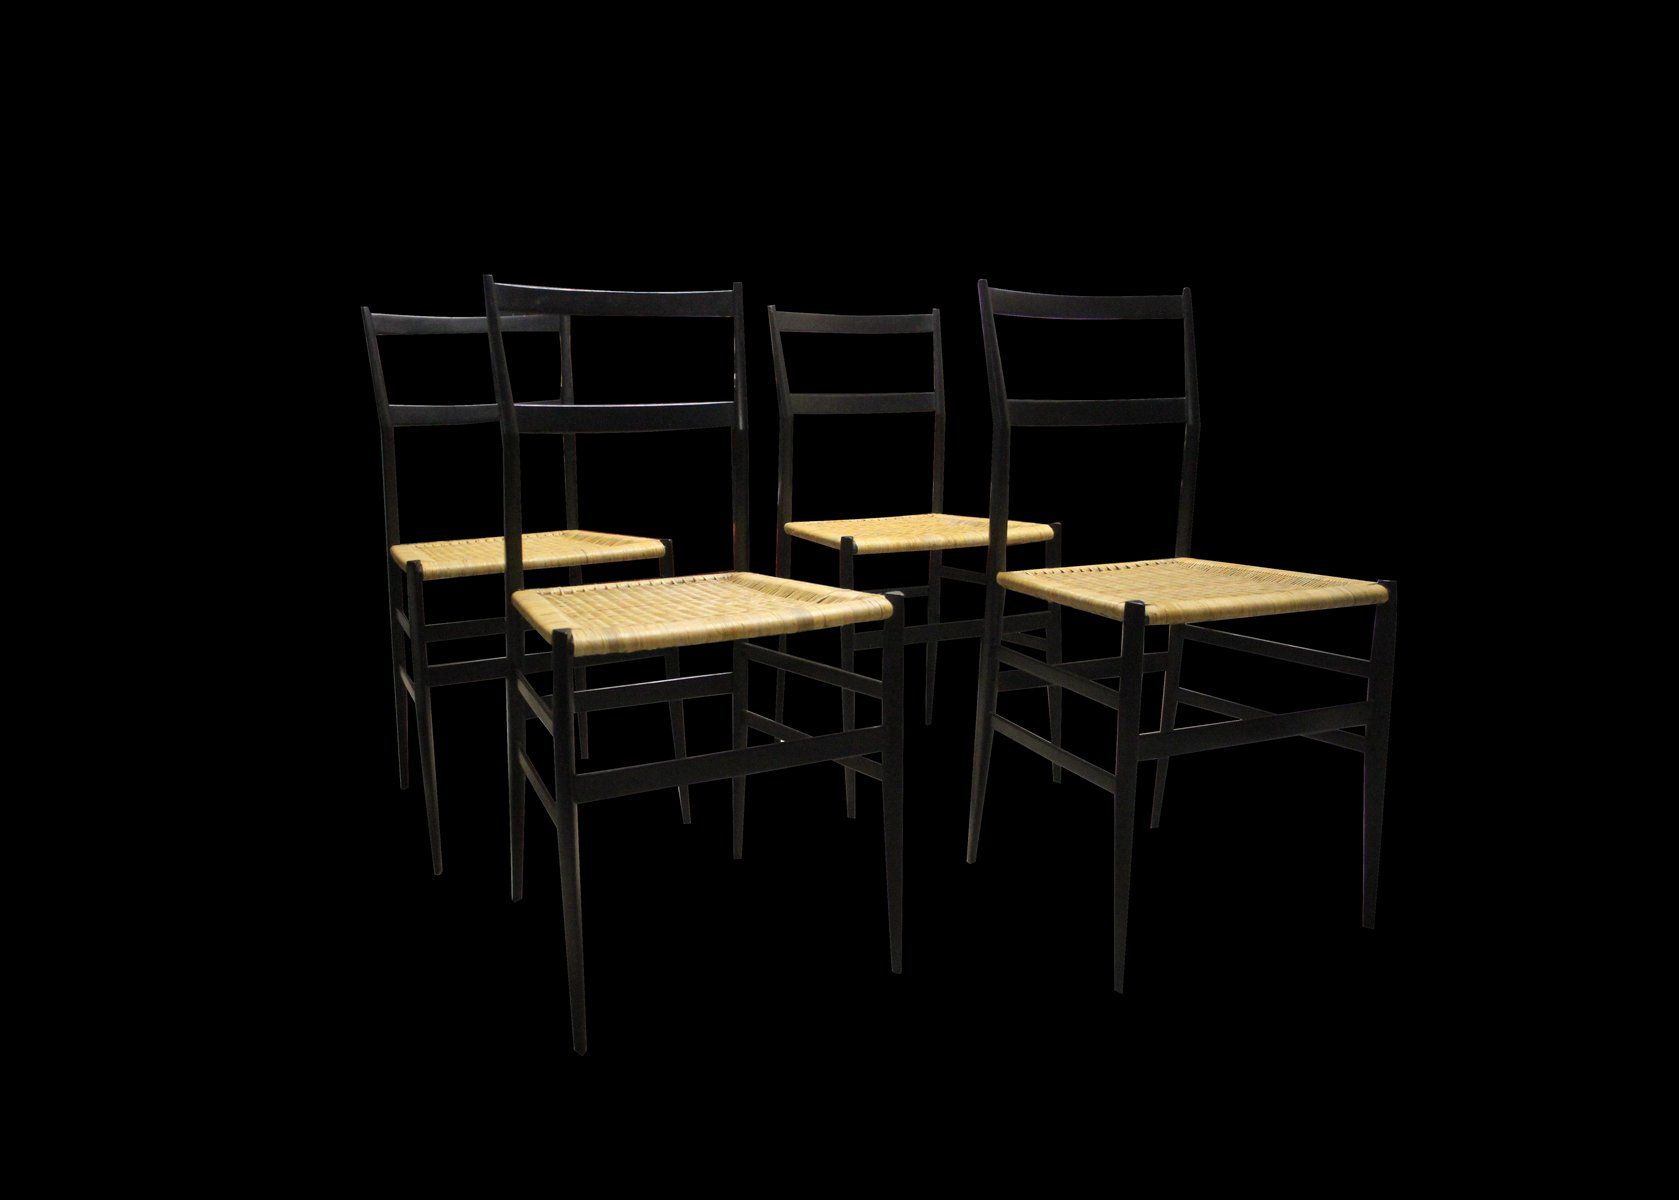 Italian Chairs by Gio Ponti for Cassina 1957 Set of 4 for sale